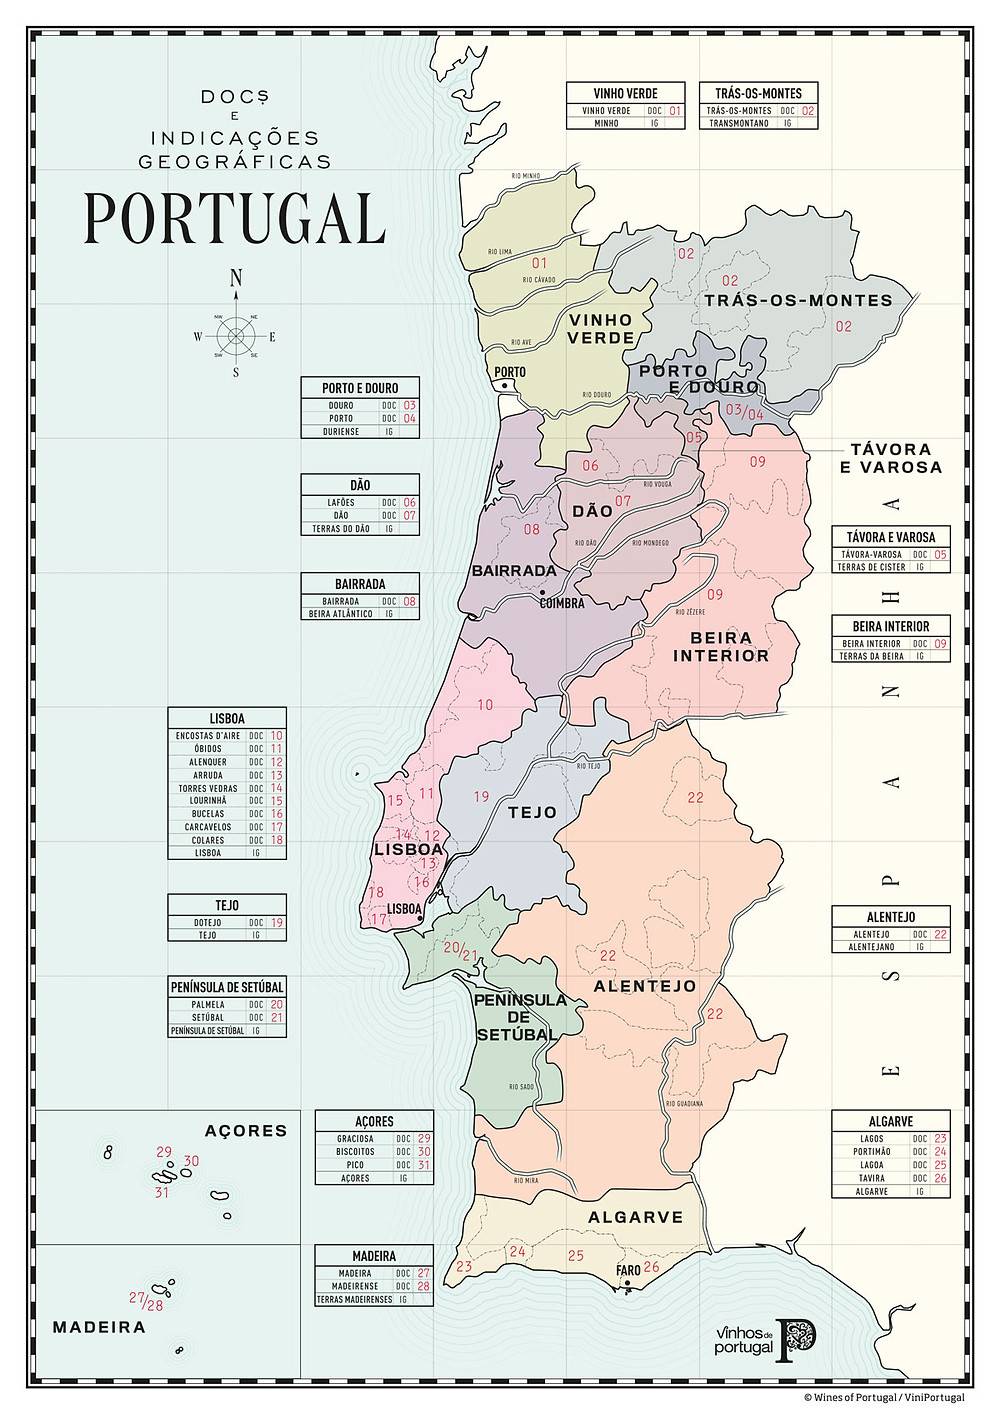 Geographical indications of Portuguese wine regions. Image source: https://www.viniportugal.pt